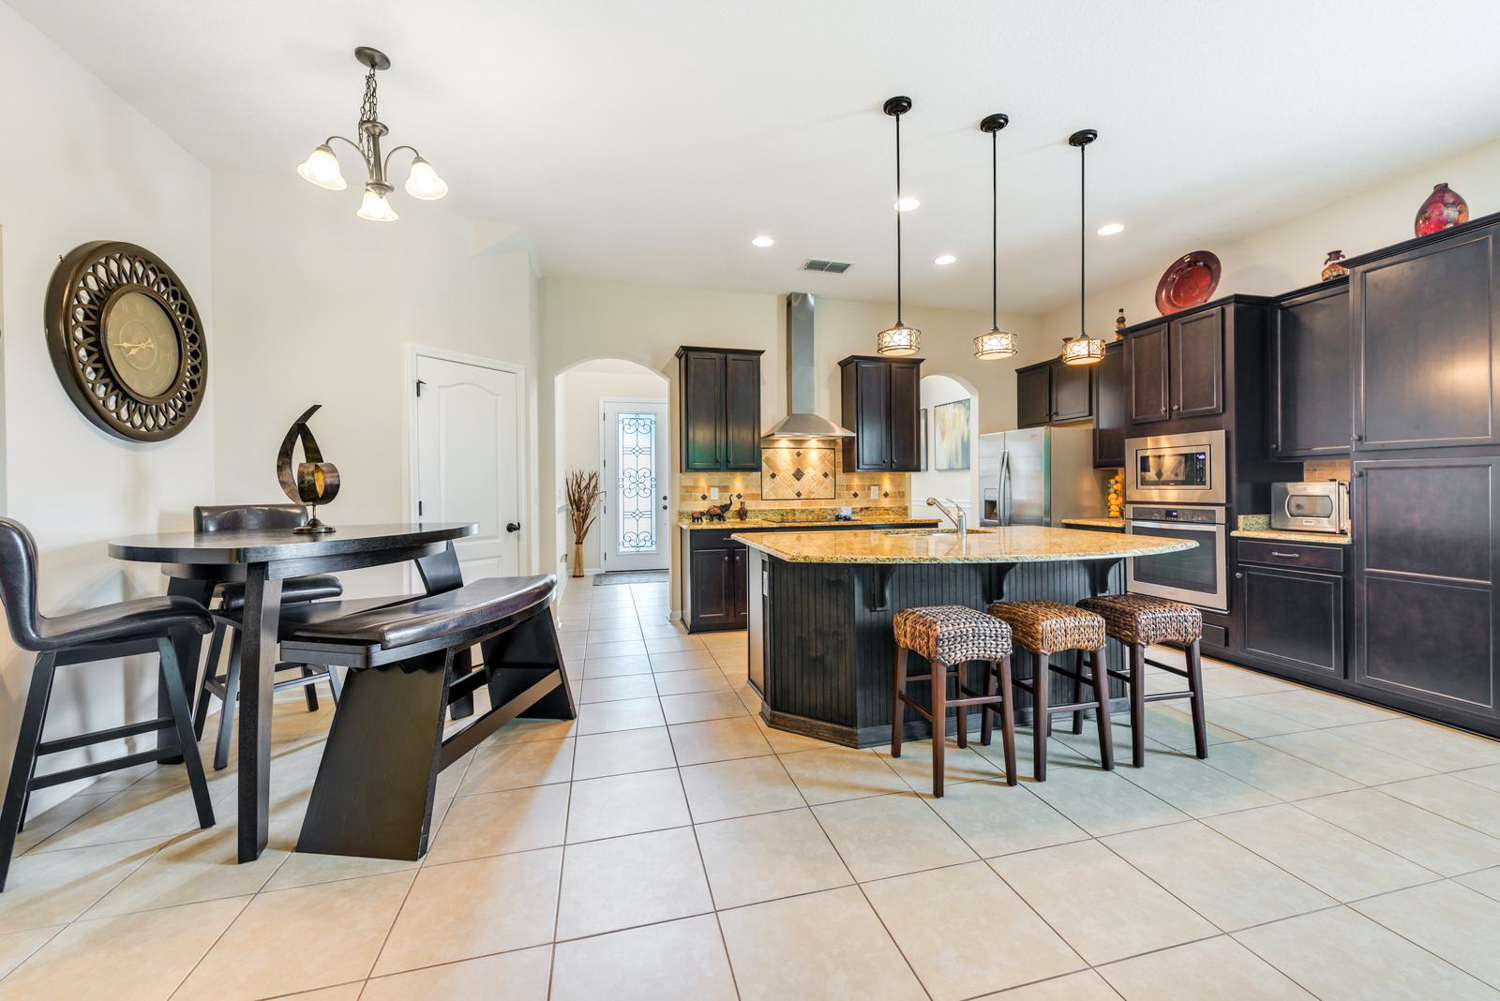 level_exposure_real_estate_photography_jacksonville_florida_32257-14